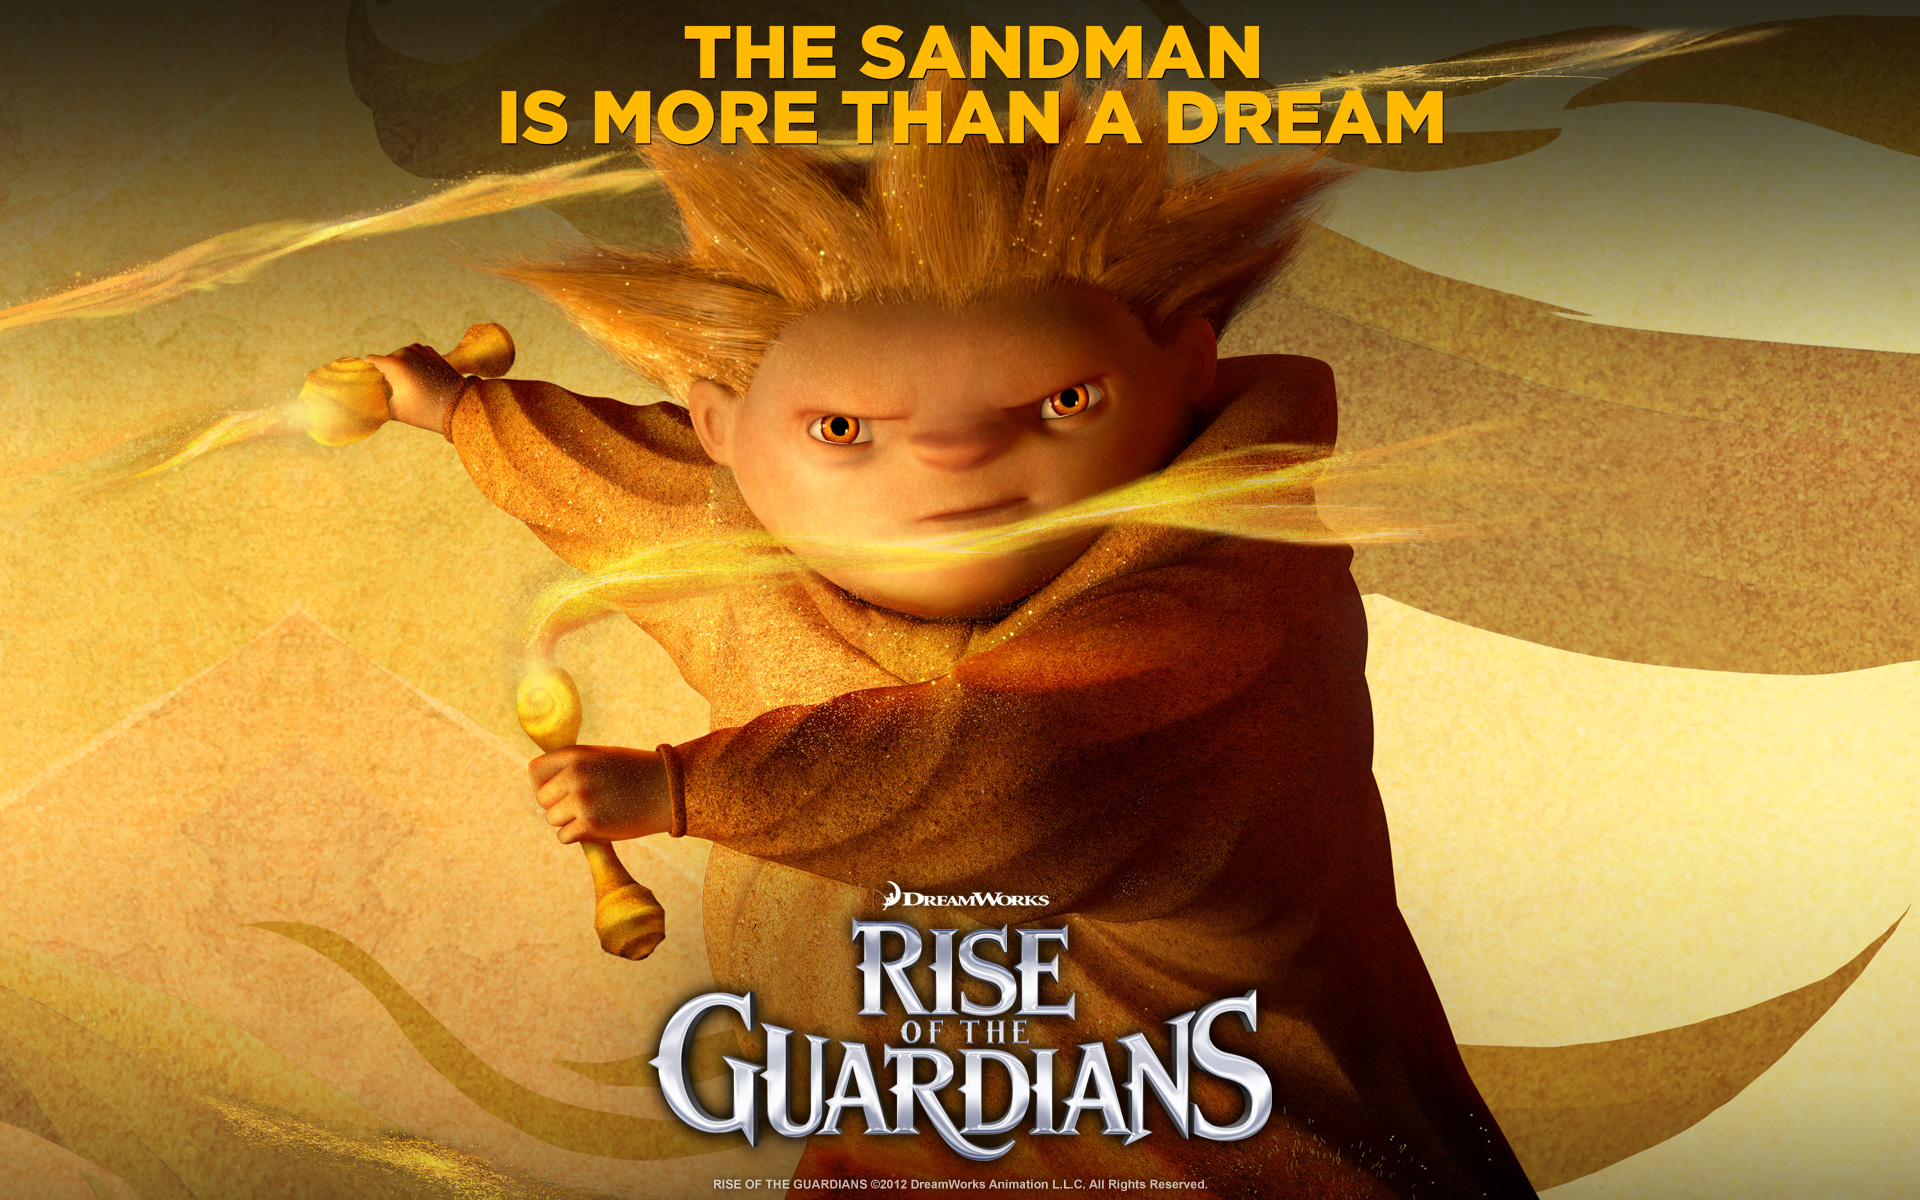 The sandman rise of the guardians movie mystery wallpaper rise of the guardians movie wallpaper orginal size 1920 x 1200 thecheapjerseys Gallery